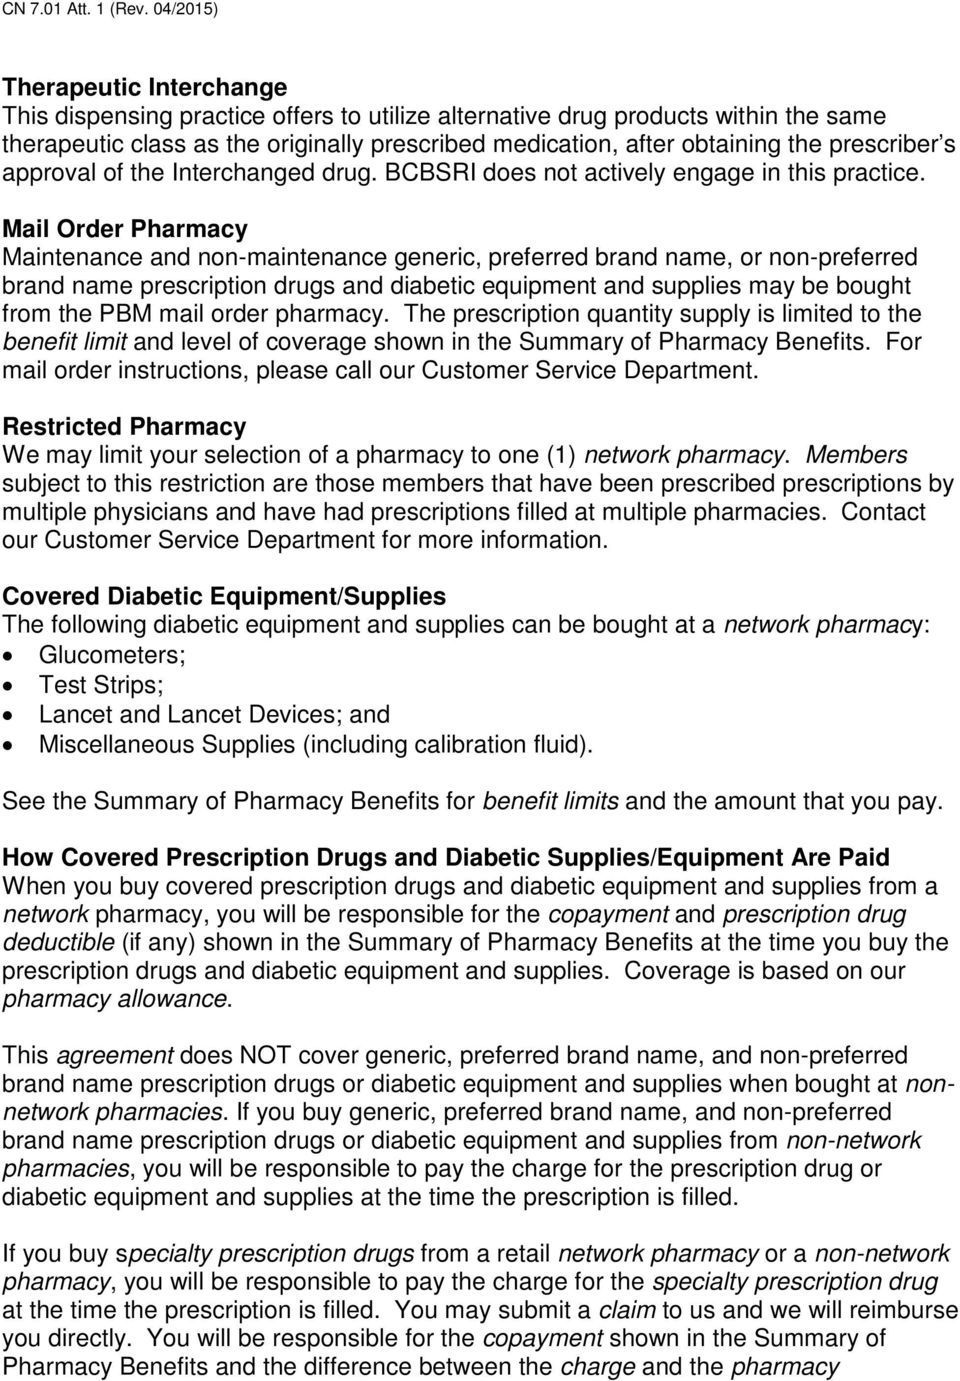 Mail Order Pharmacy Maintenance and non-maintenance generic, preferred brand name, or non-preferred brand name prescription drugs and diabetic equipment and supplies may be bought from the PBM mail